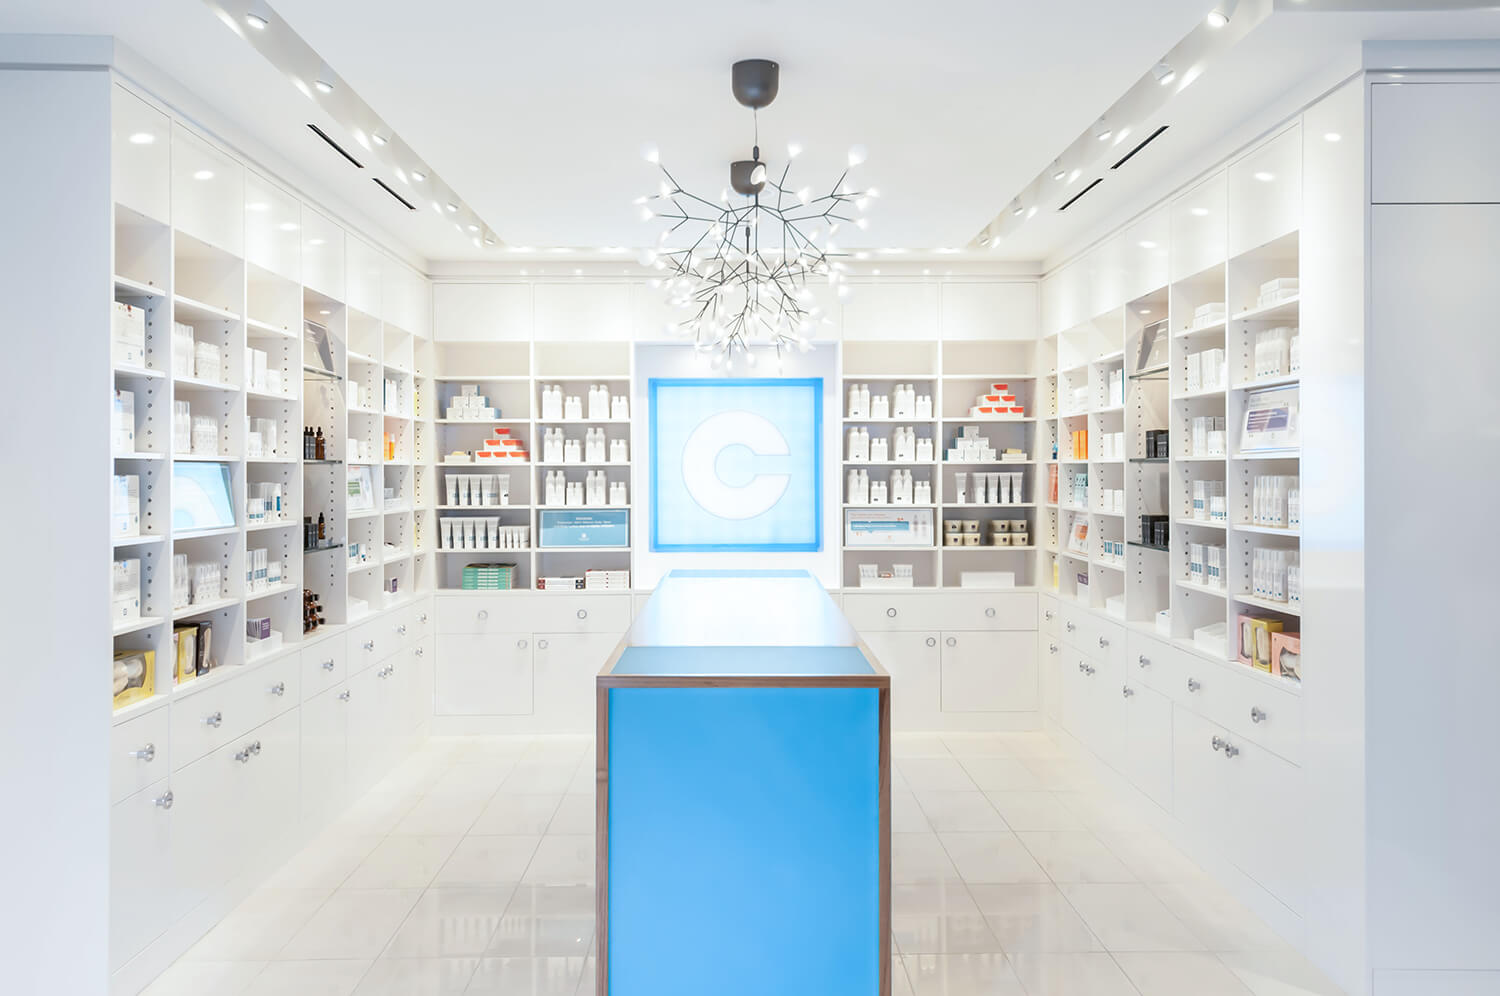 Consonant SkincareDowntown Toronto - A BEAUTY BRAND BROUGHT TO LIFE